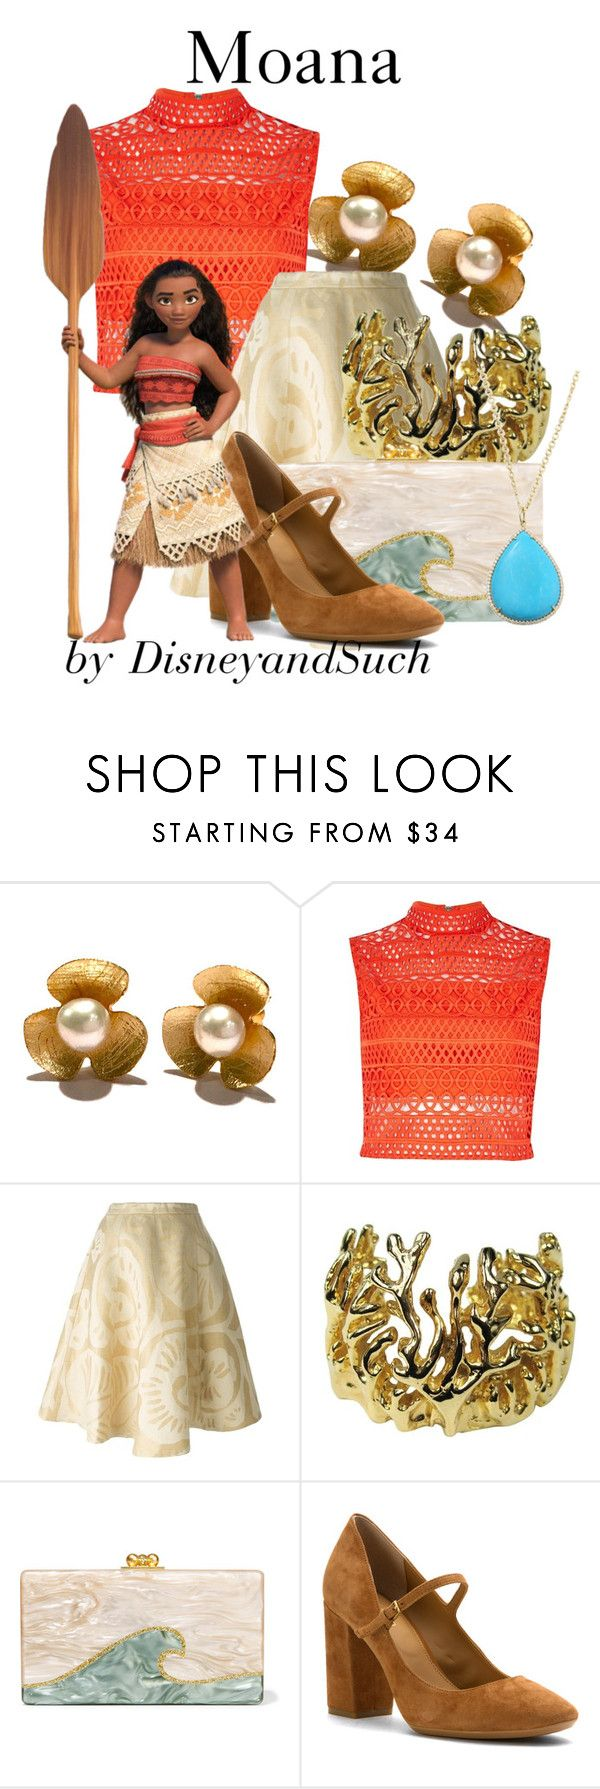 """Moana"" by disneyandsuch ❤ liked on Polyvore featuring River Island, Société Anonyme, Robert Lee Morris, Edie Parker, Calvin Klein, Irene Neuwirth, disney, disneybound, moana and WhereIsMySuperSuit"